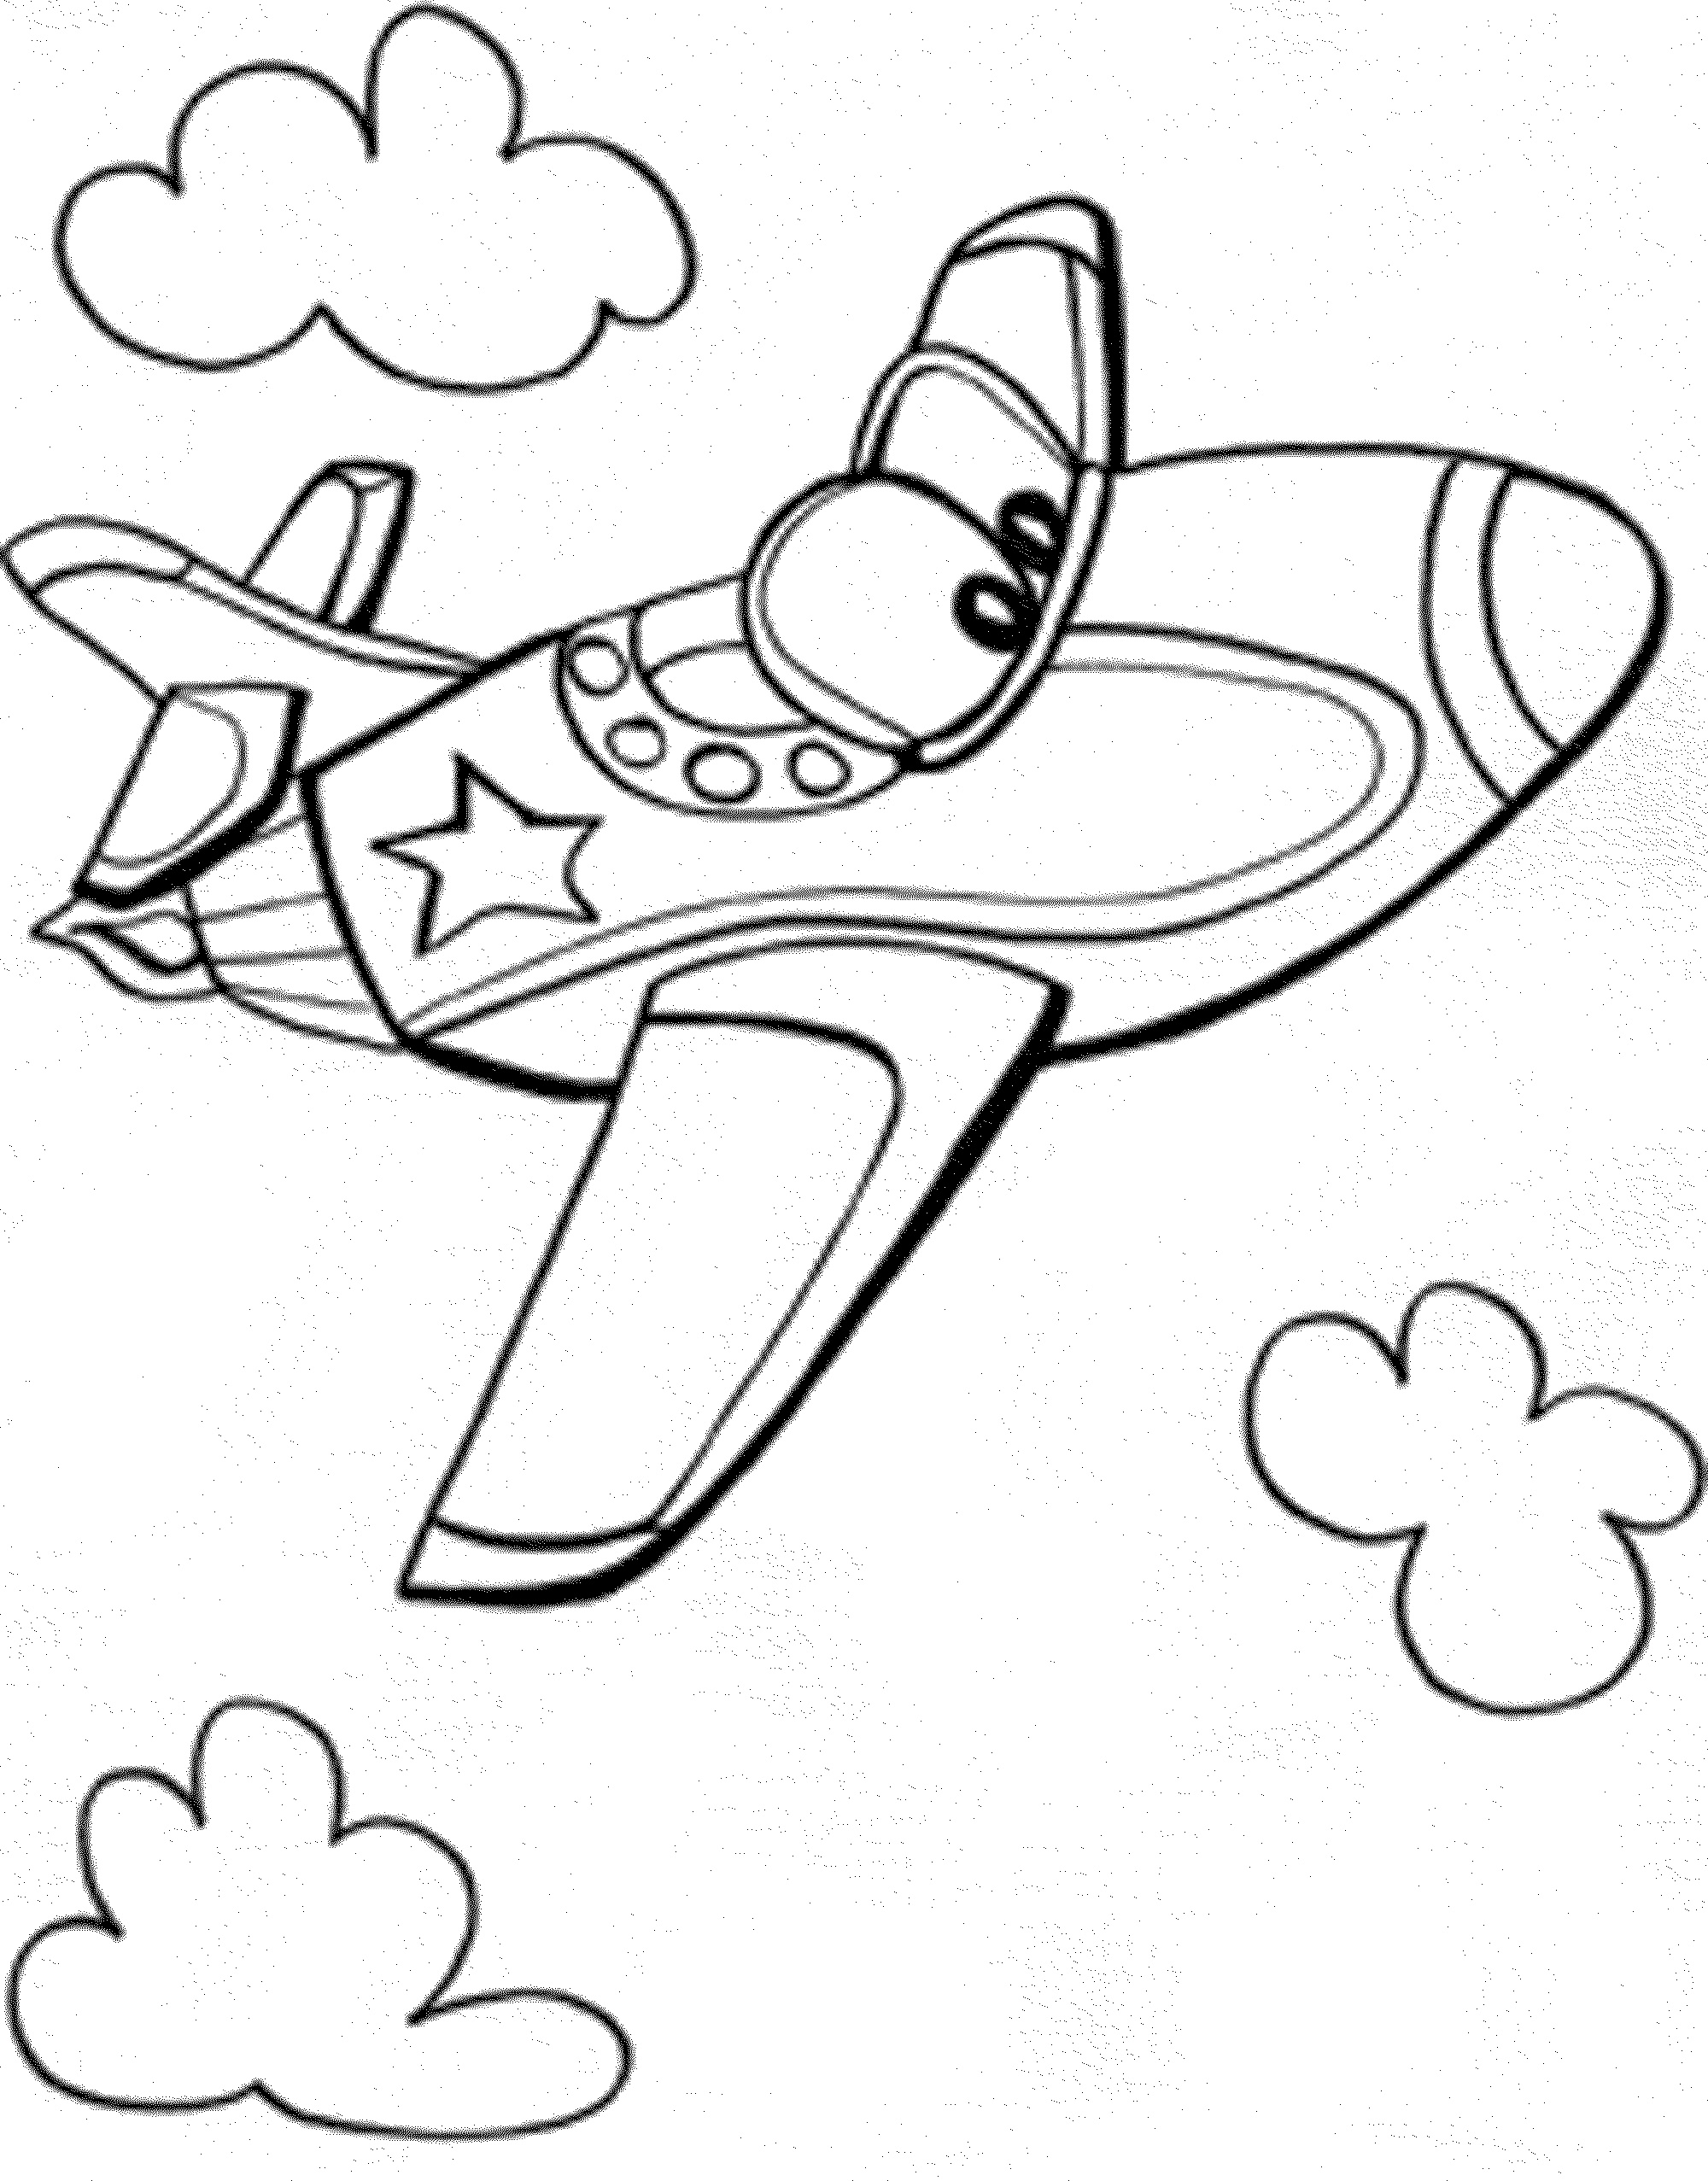 Cartoon Airplane Coloring Pages At Getdrawings Com Free For